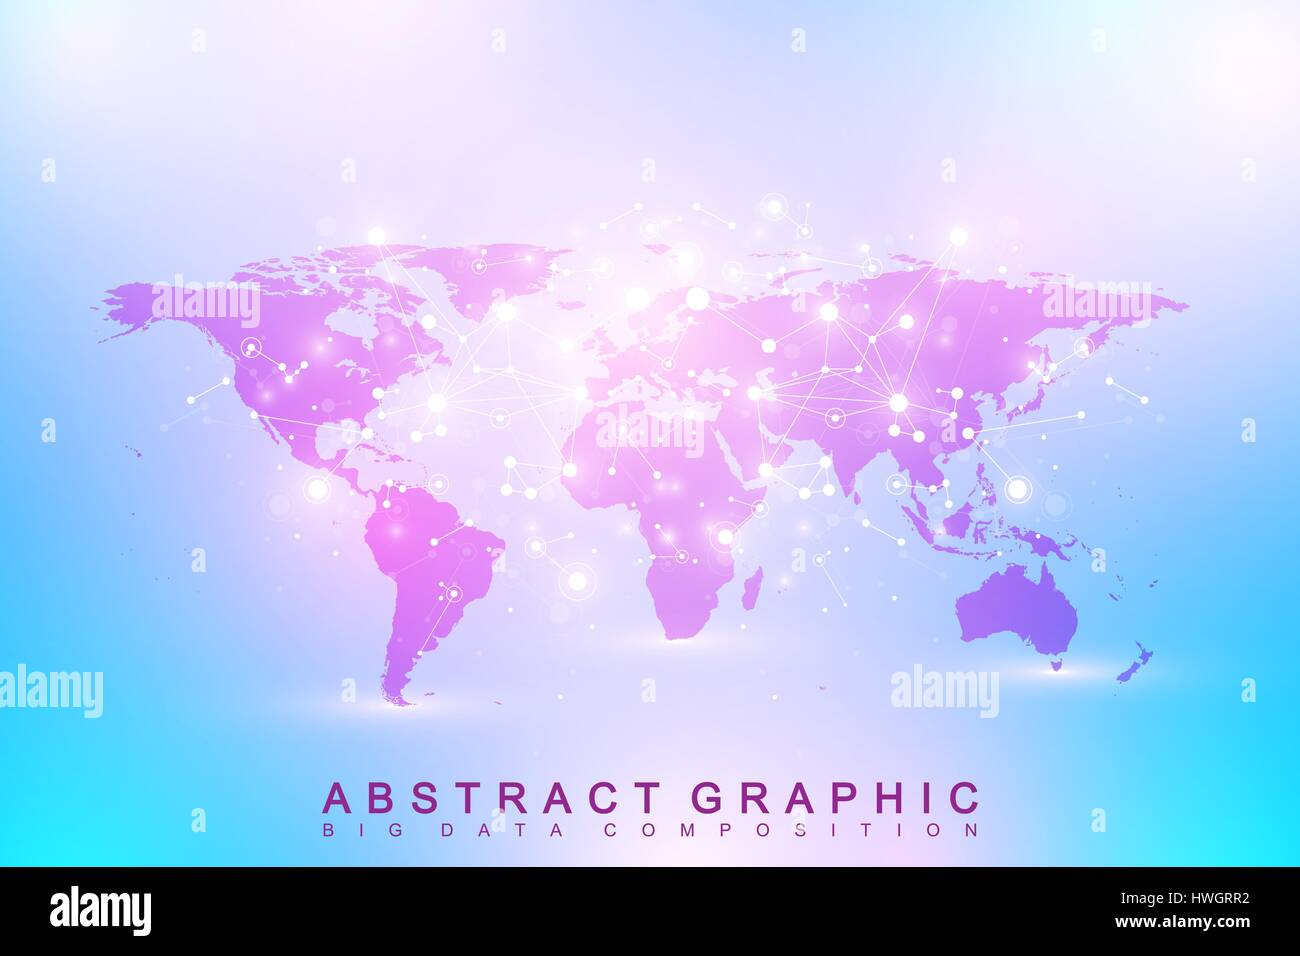 Political world map geometric graphic background communication big big data complex with compounds perspective backdrop digital data visualization minimalistic chaotic design vector illustration political world map gumiabroncs Choice Image